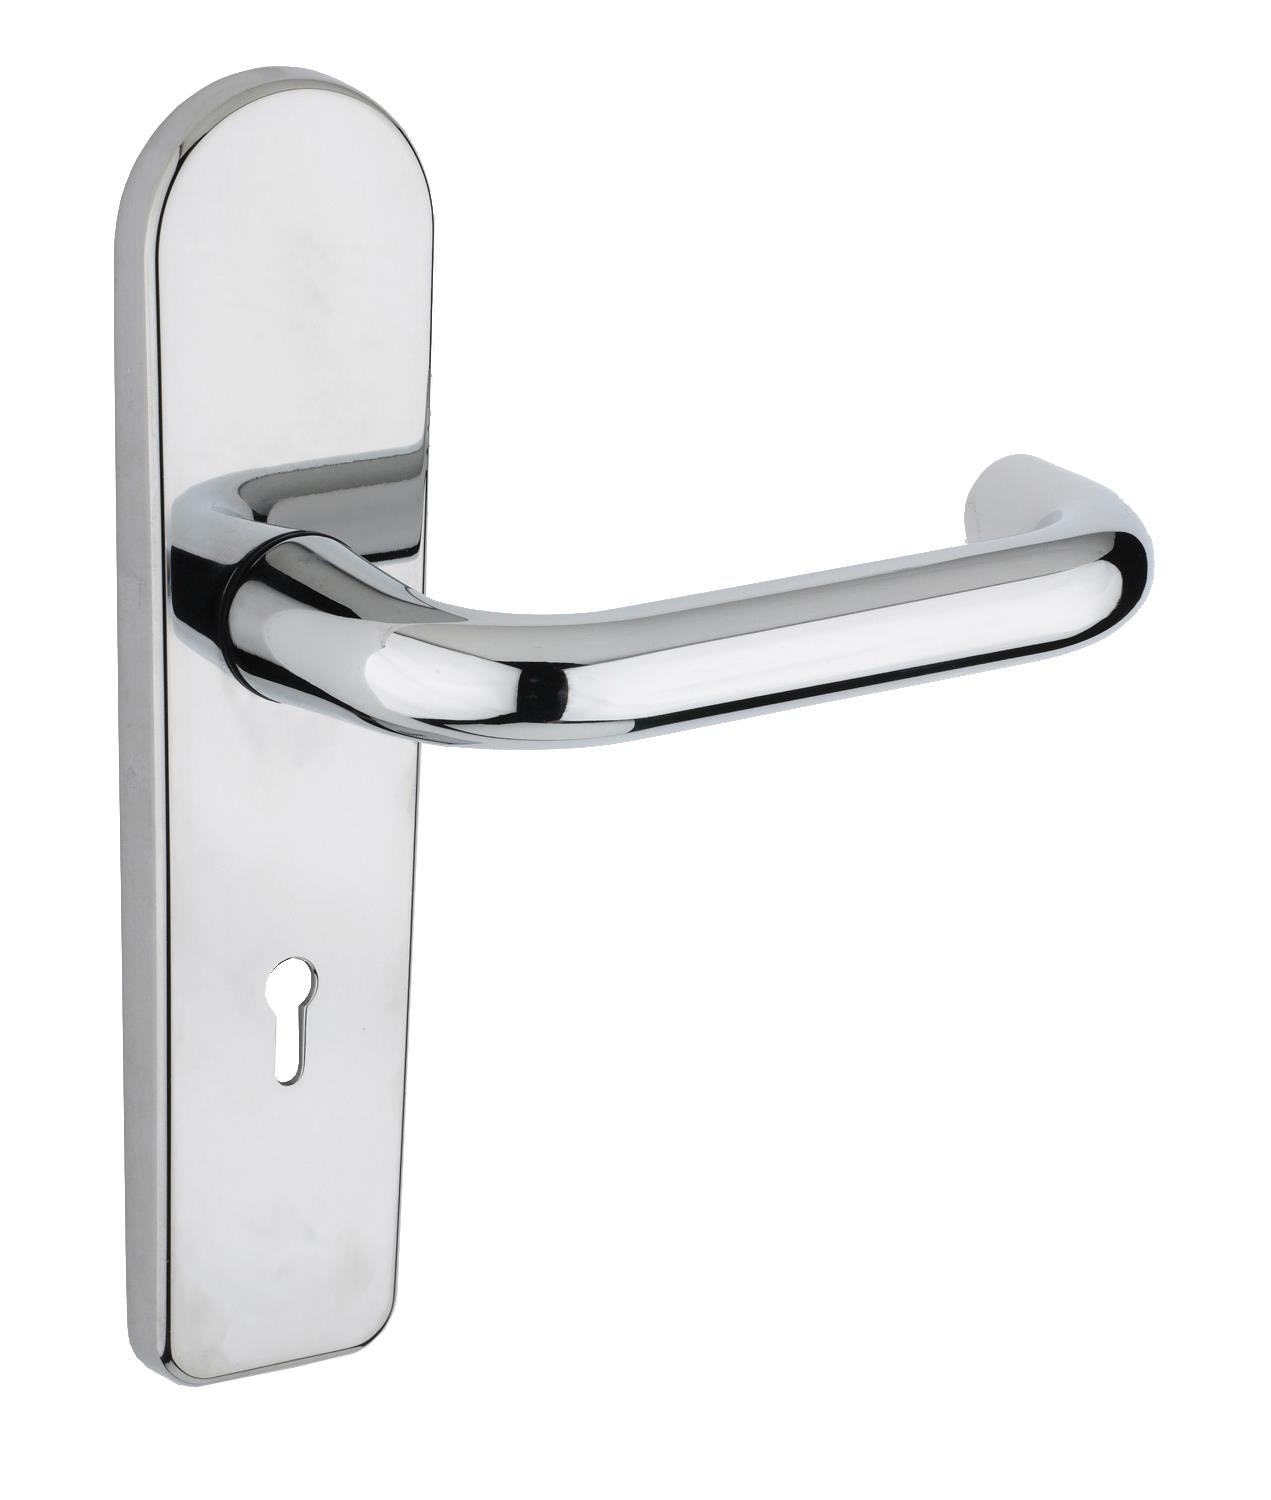 3K70F-R - Lever/Lever Furniture to Suit 3K70 Lock